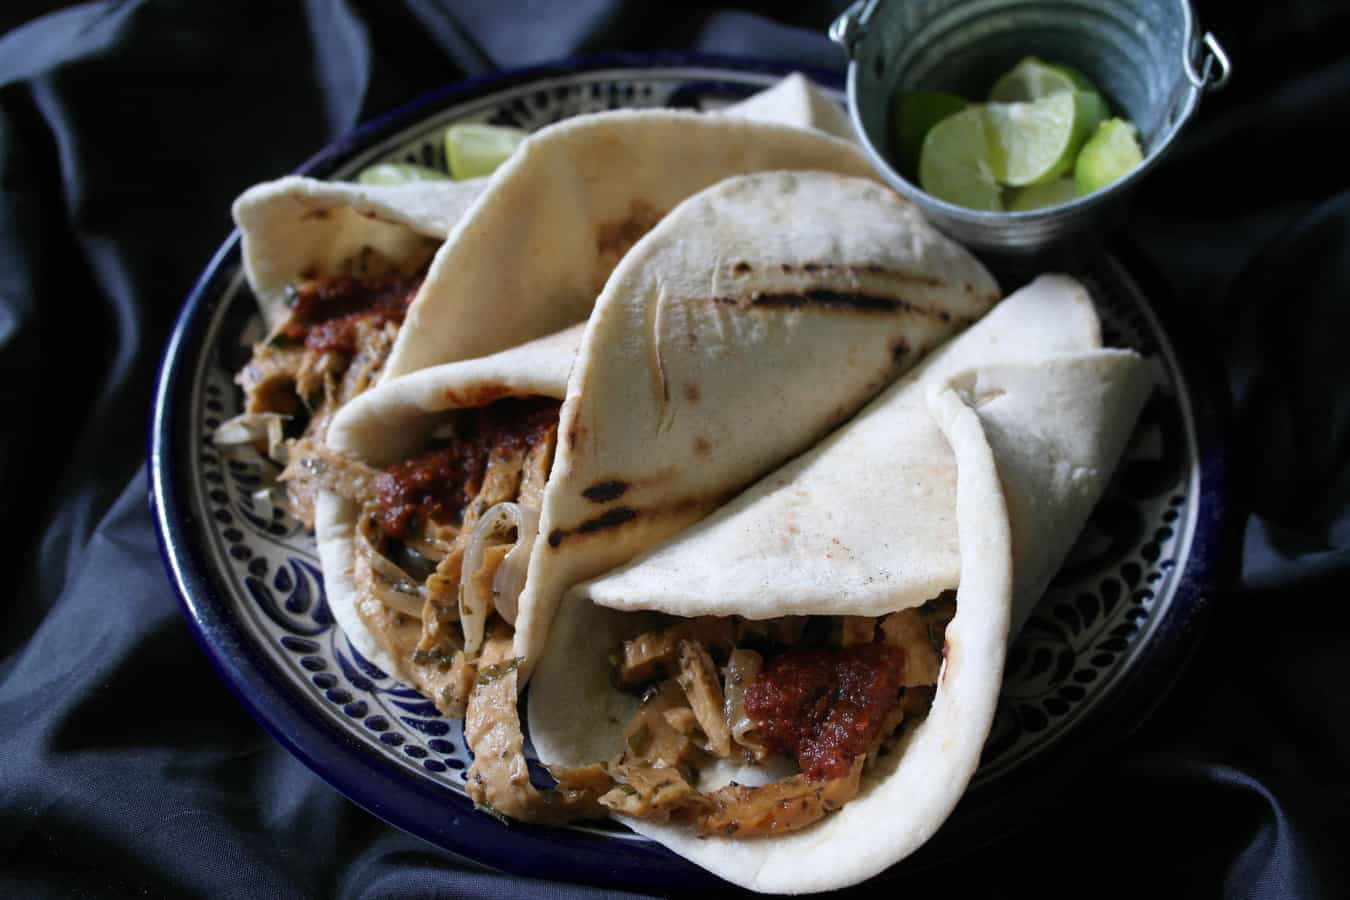 Tacos arabes puebla recipe -1